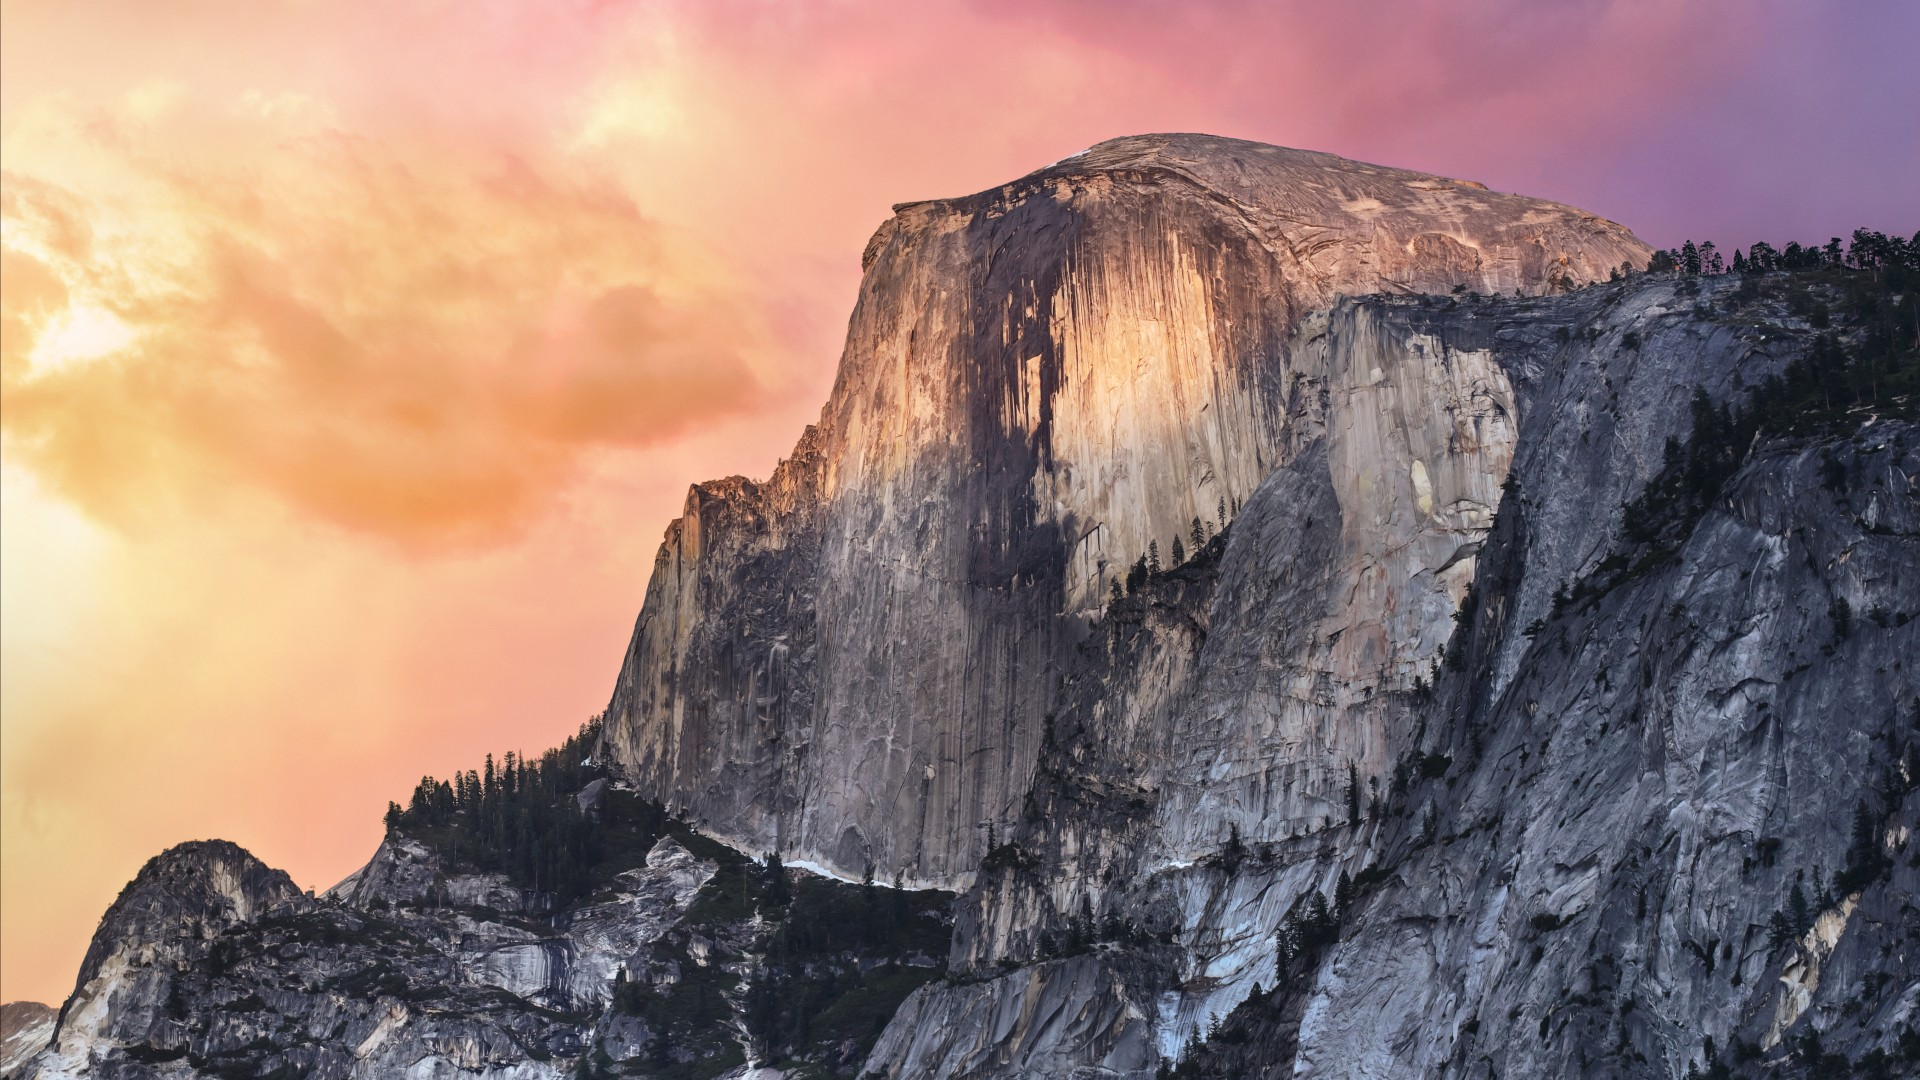 El Capitan, 5k, 4k wallpaper, 8k, yosemite, forest, OSX, apple, mountains, sunset (horizontal)